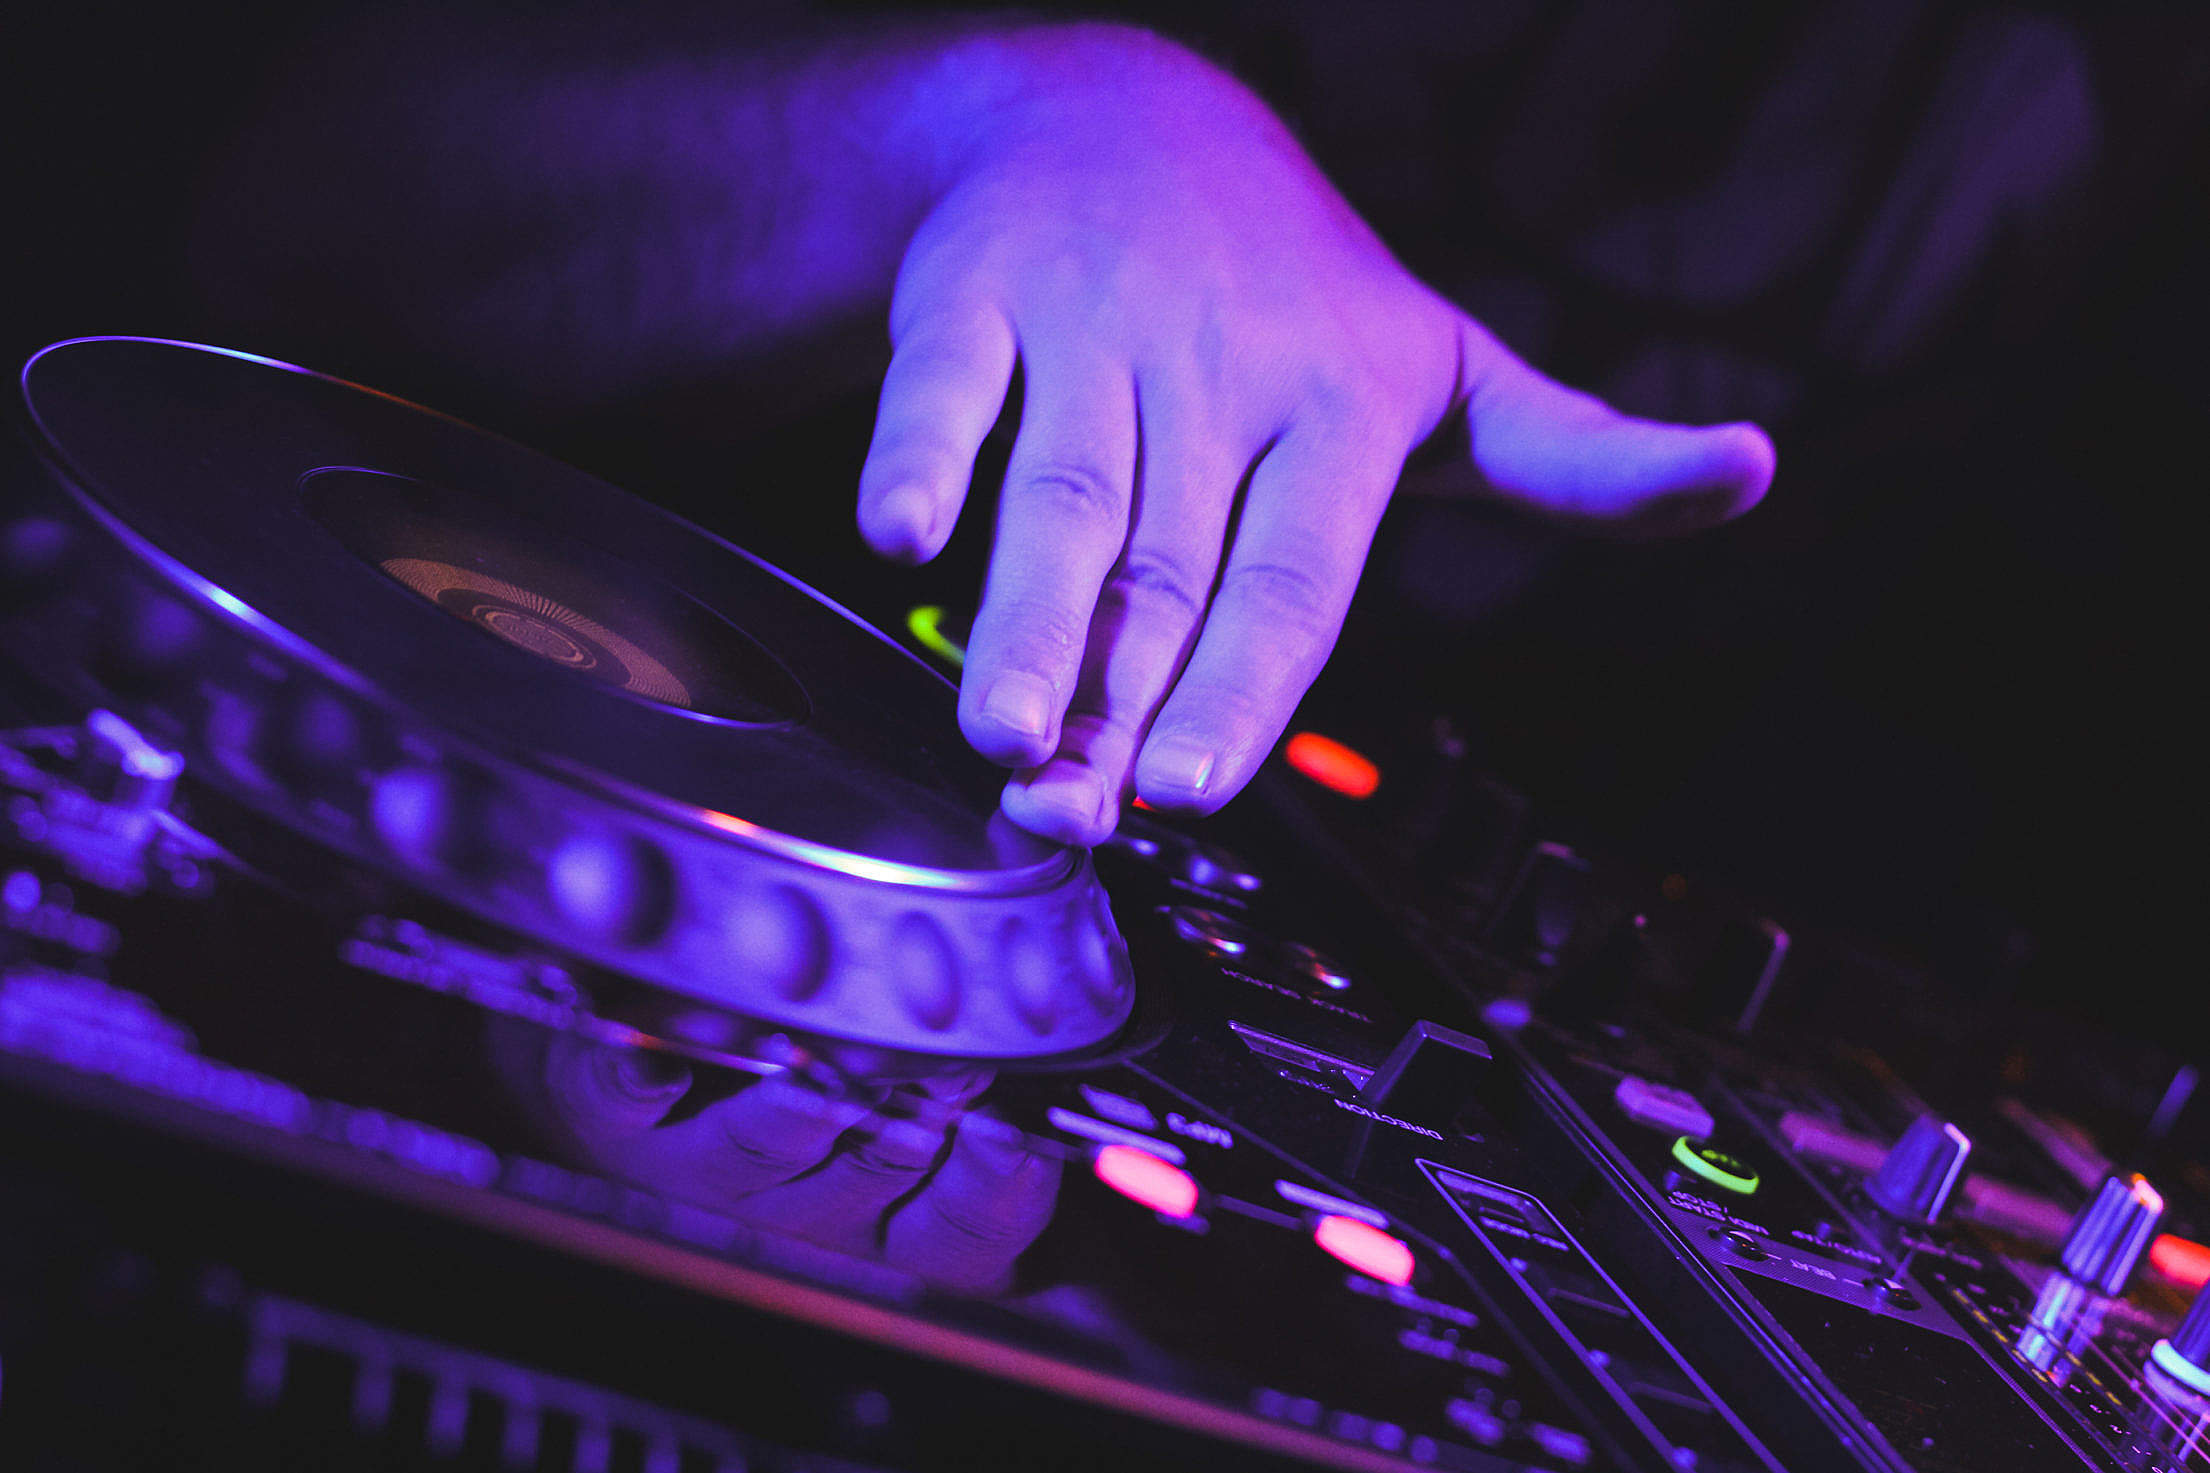 DJ's Scratching on CD Players Hand Close Up Free Stock Photo